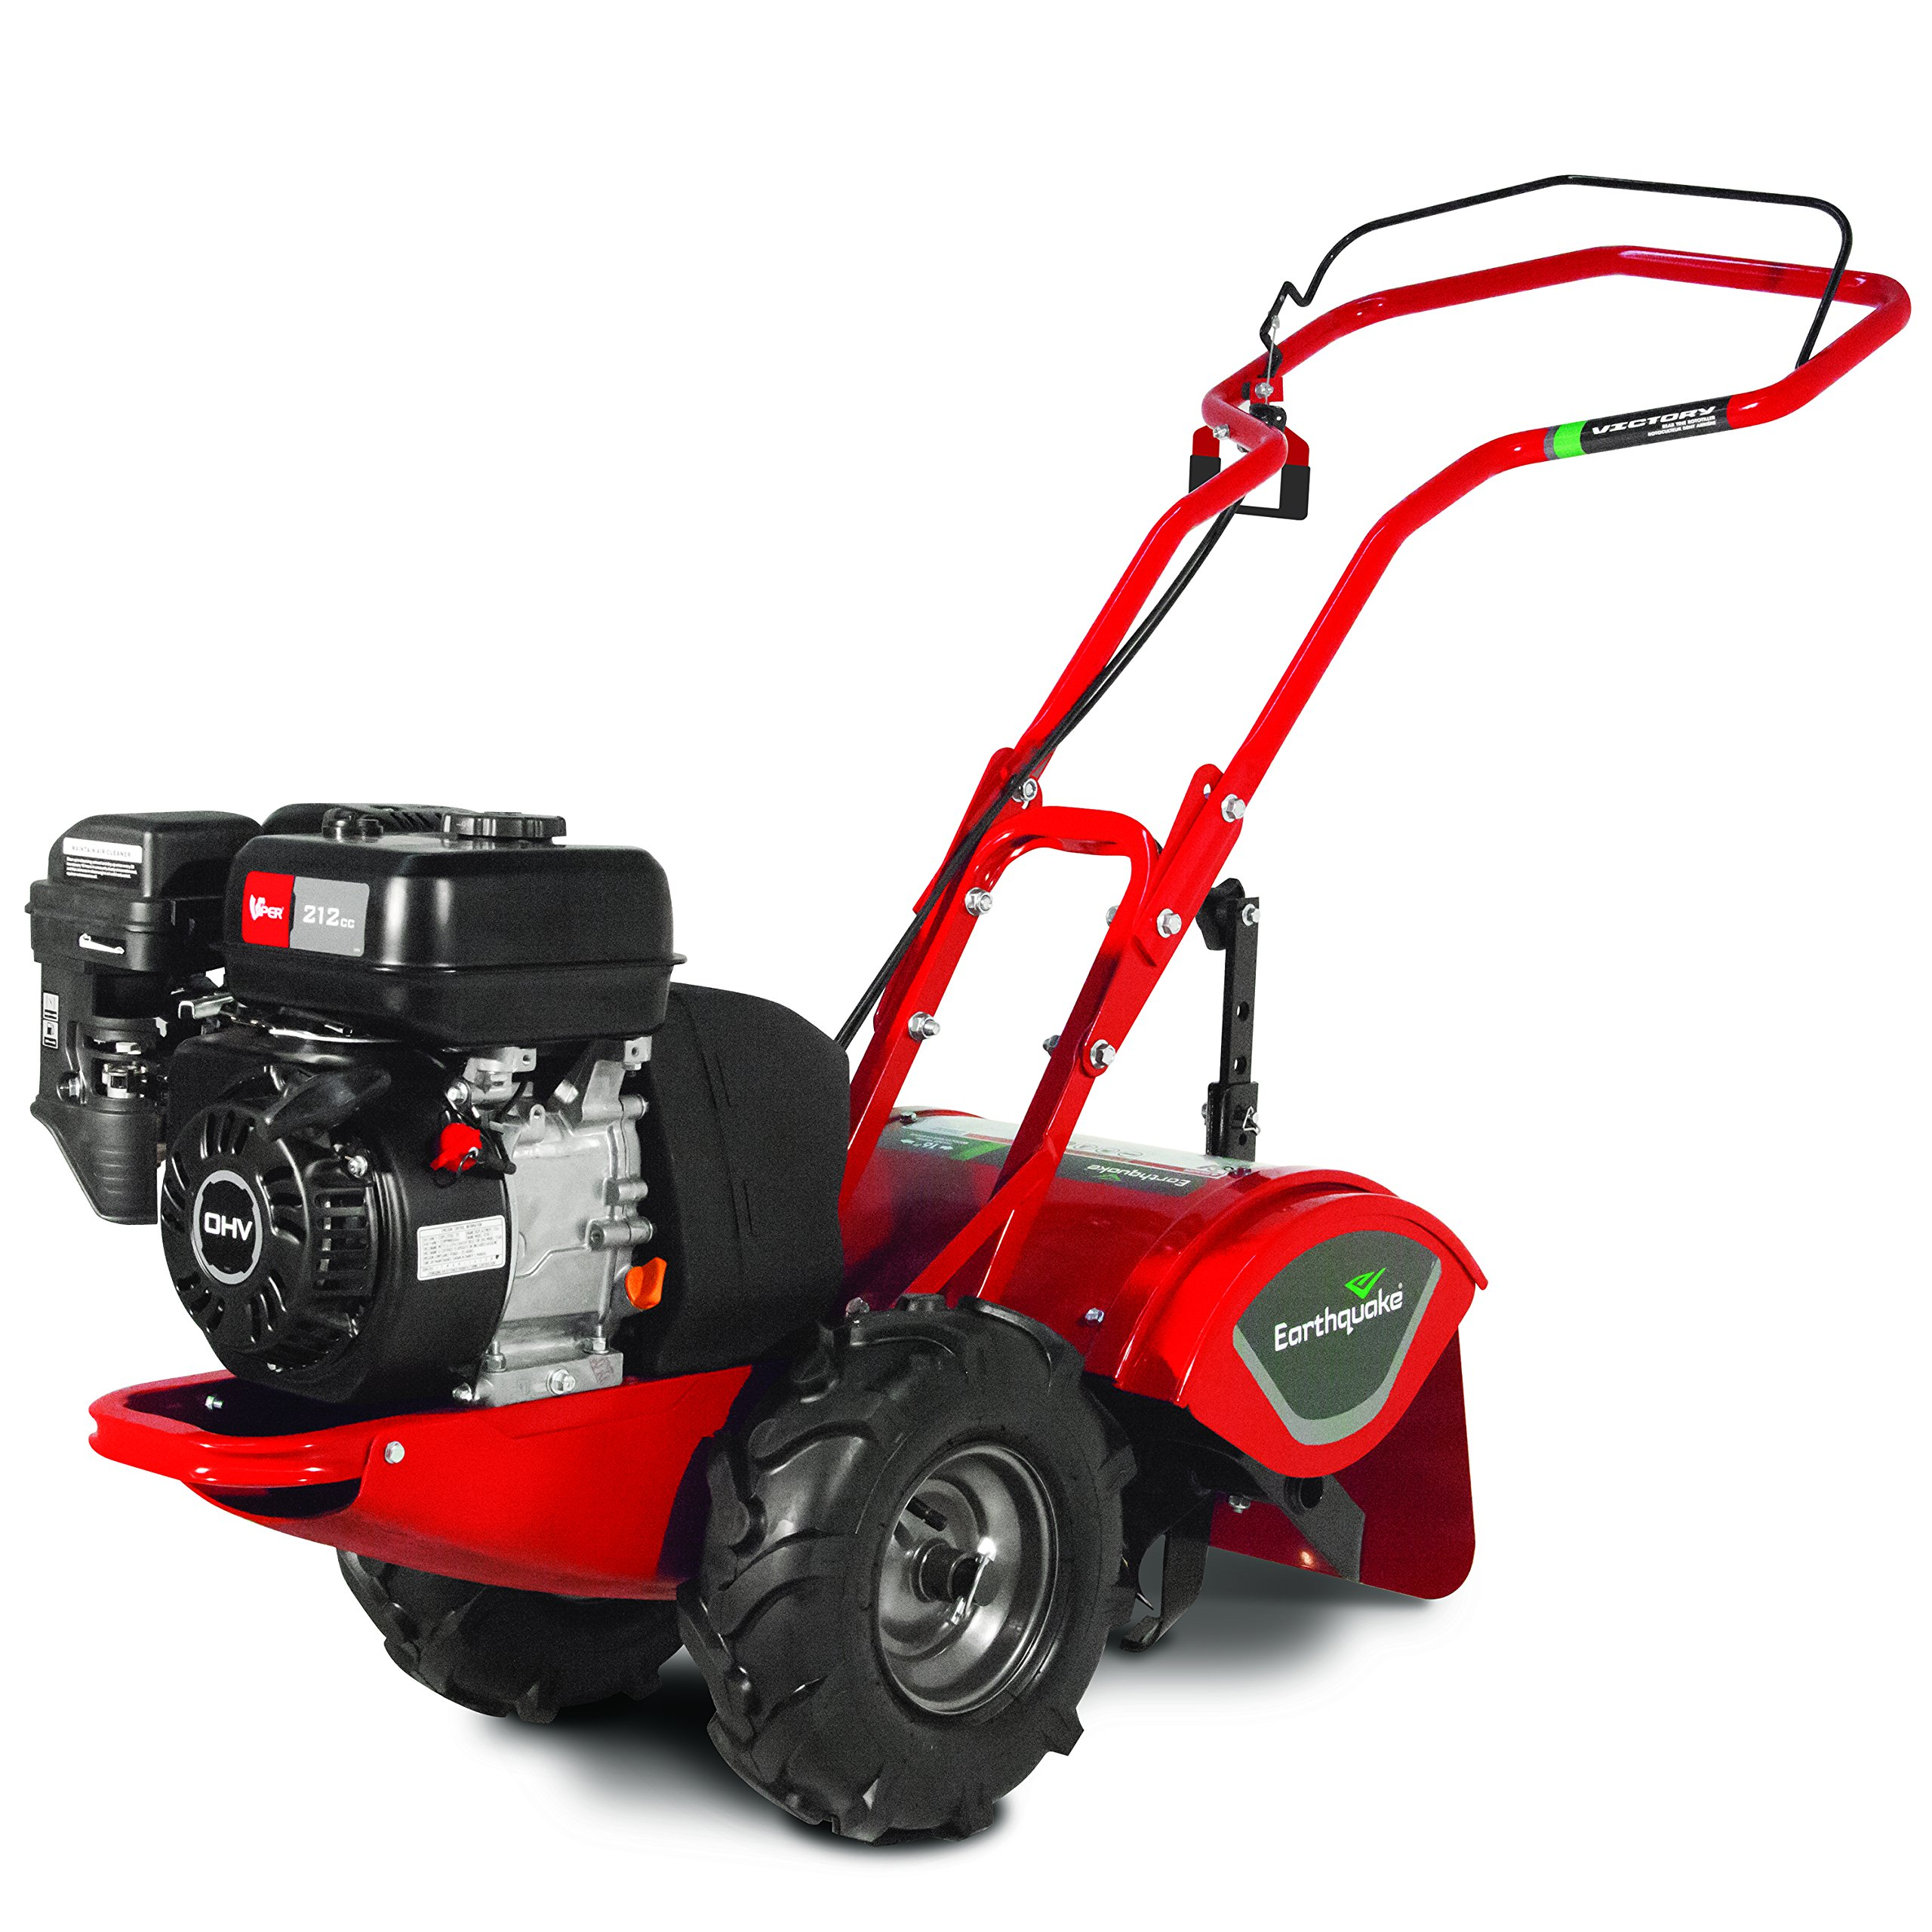 Earthquake 24598 Victory Compact Rear Tine Tiller, with Reverse & 4-Cycle 212cc Viper Engine